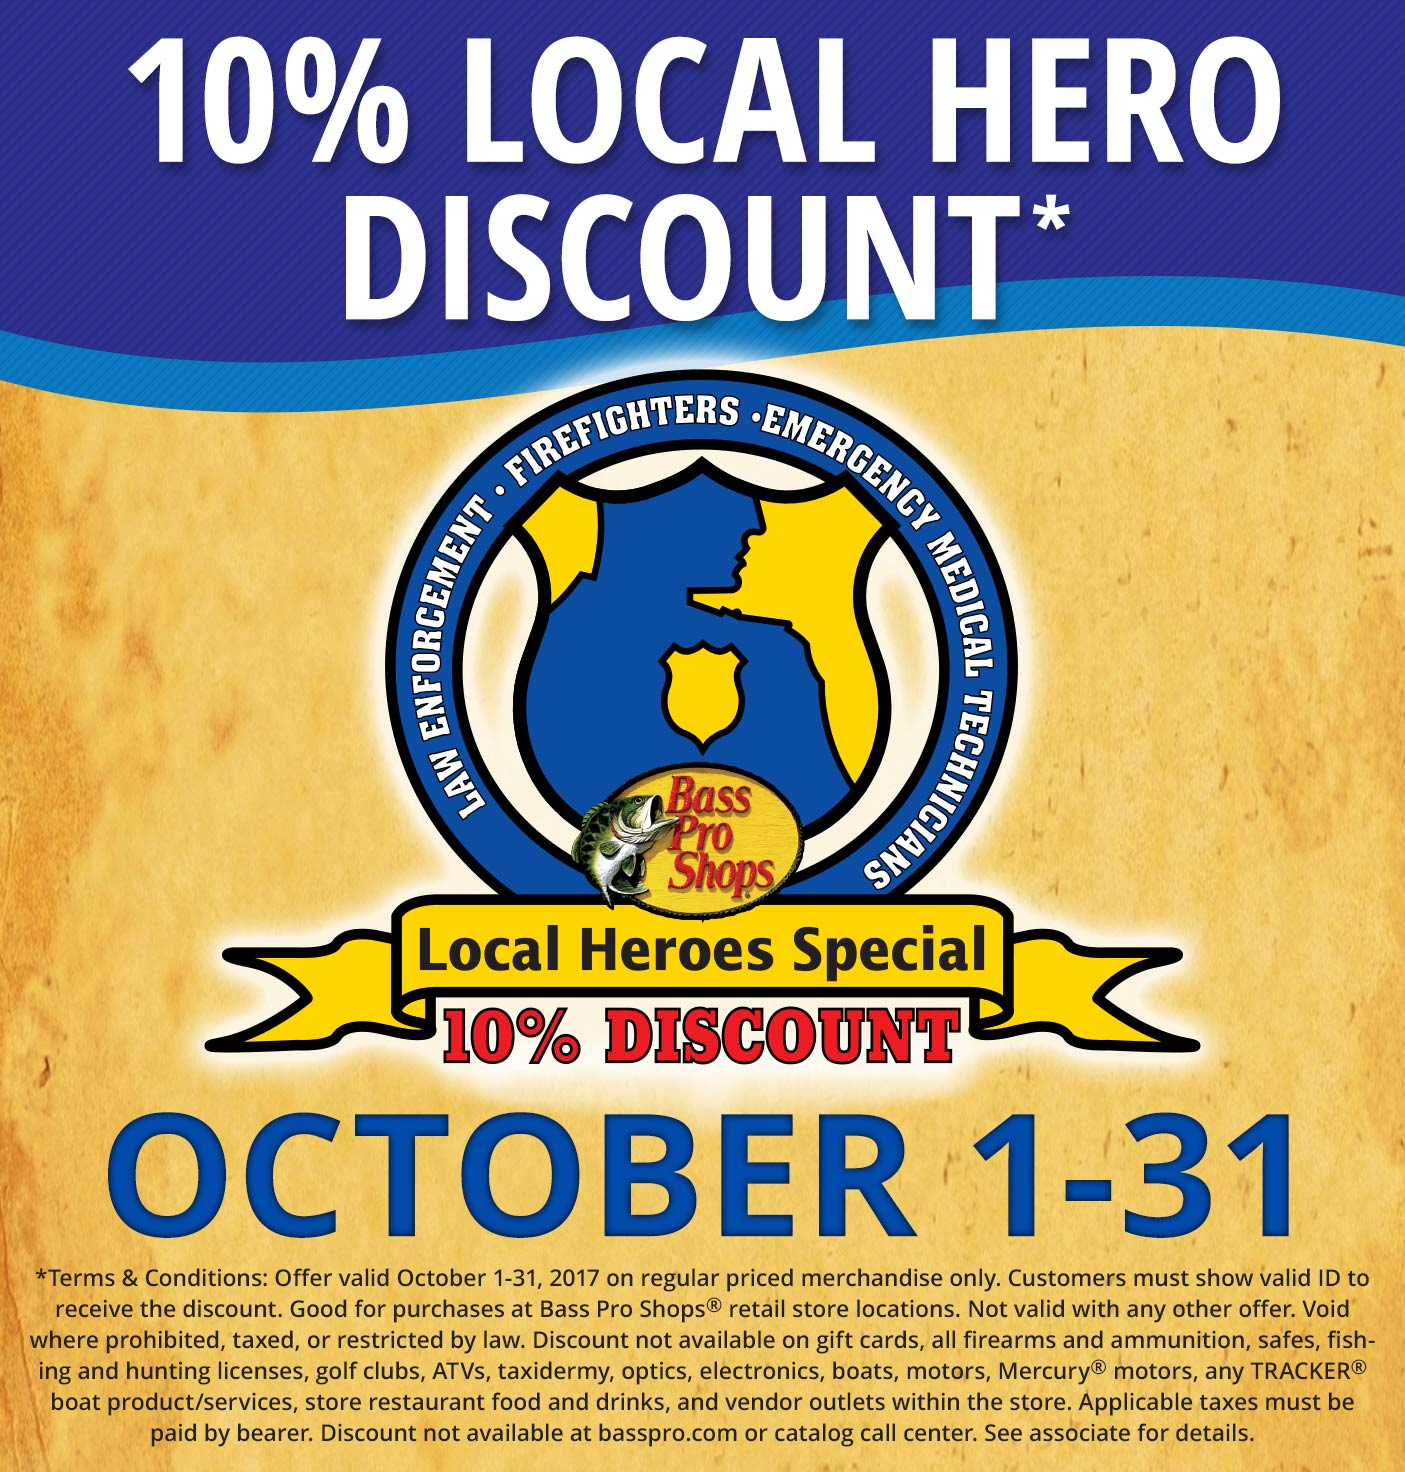 10% Local Hero Discount October 1-31